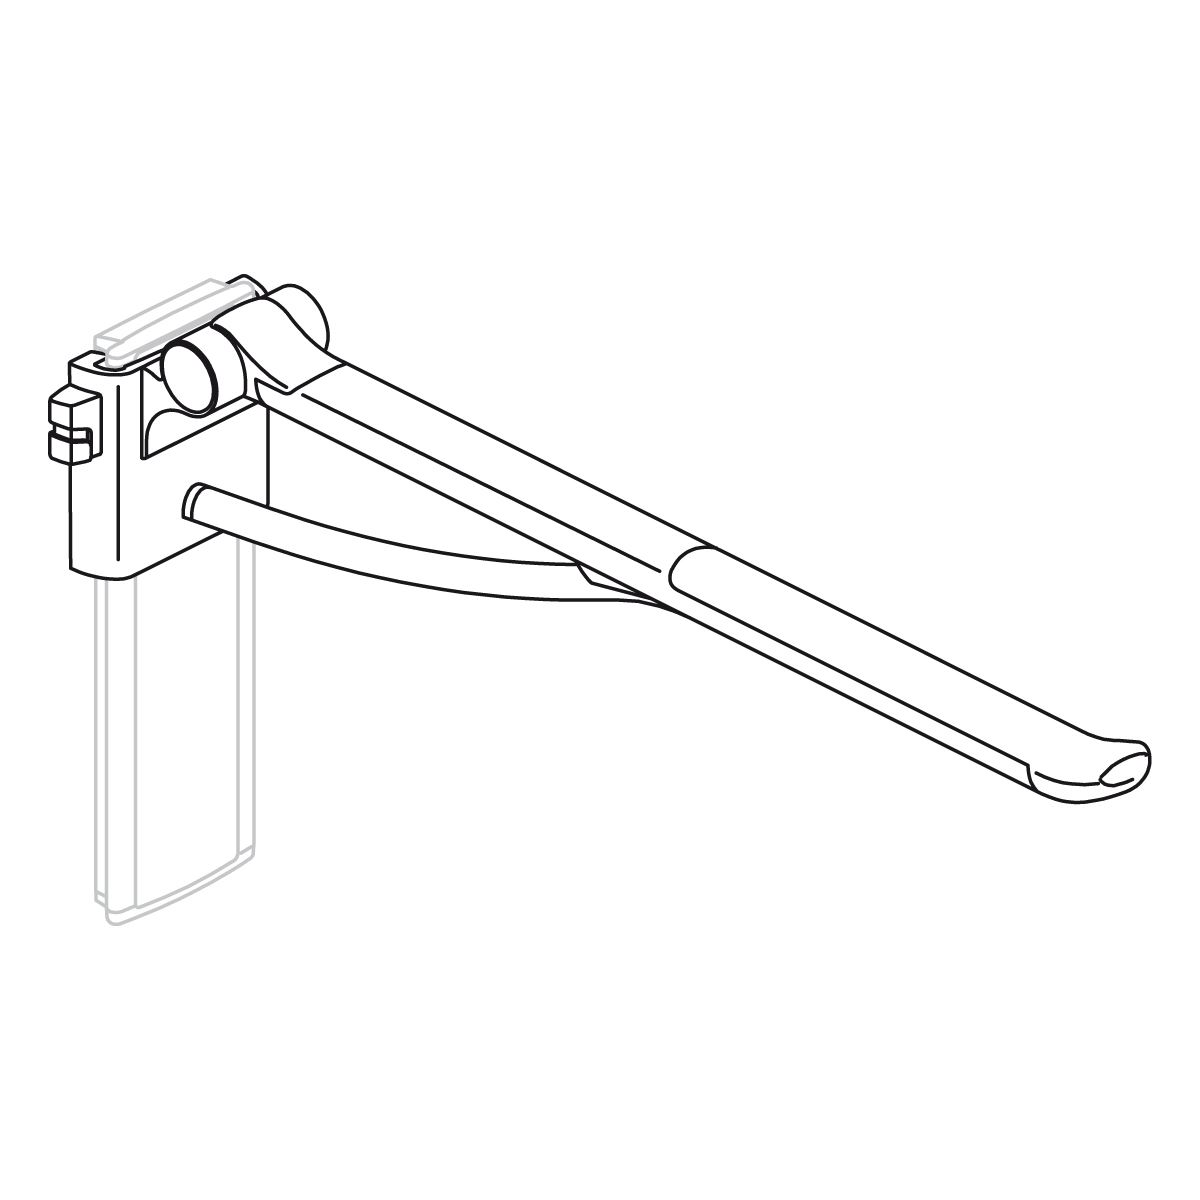 PLUS support arm, height adjustable